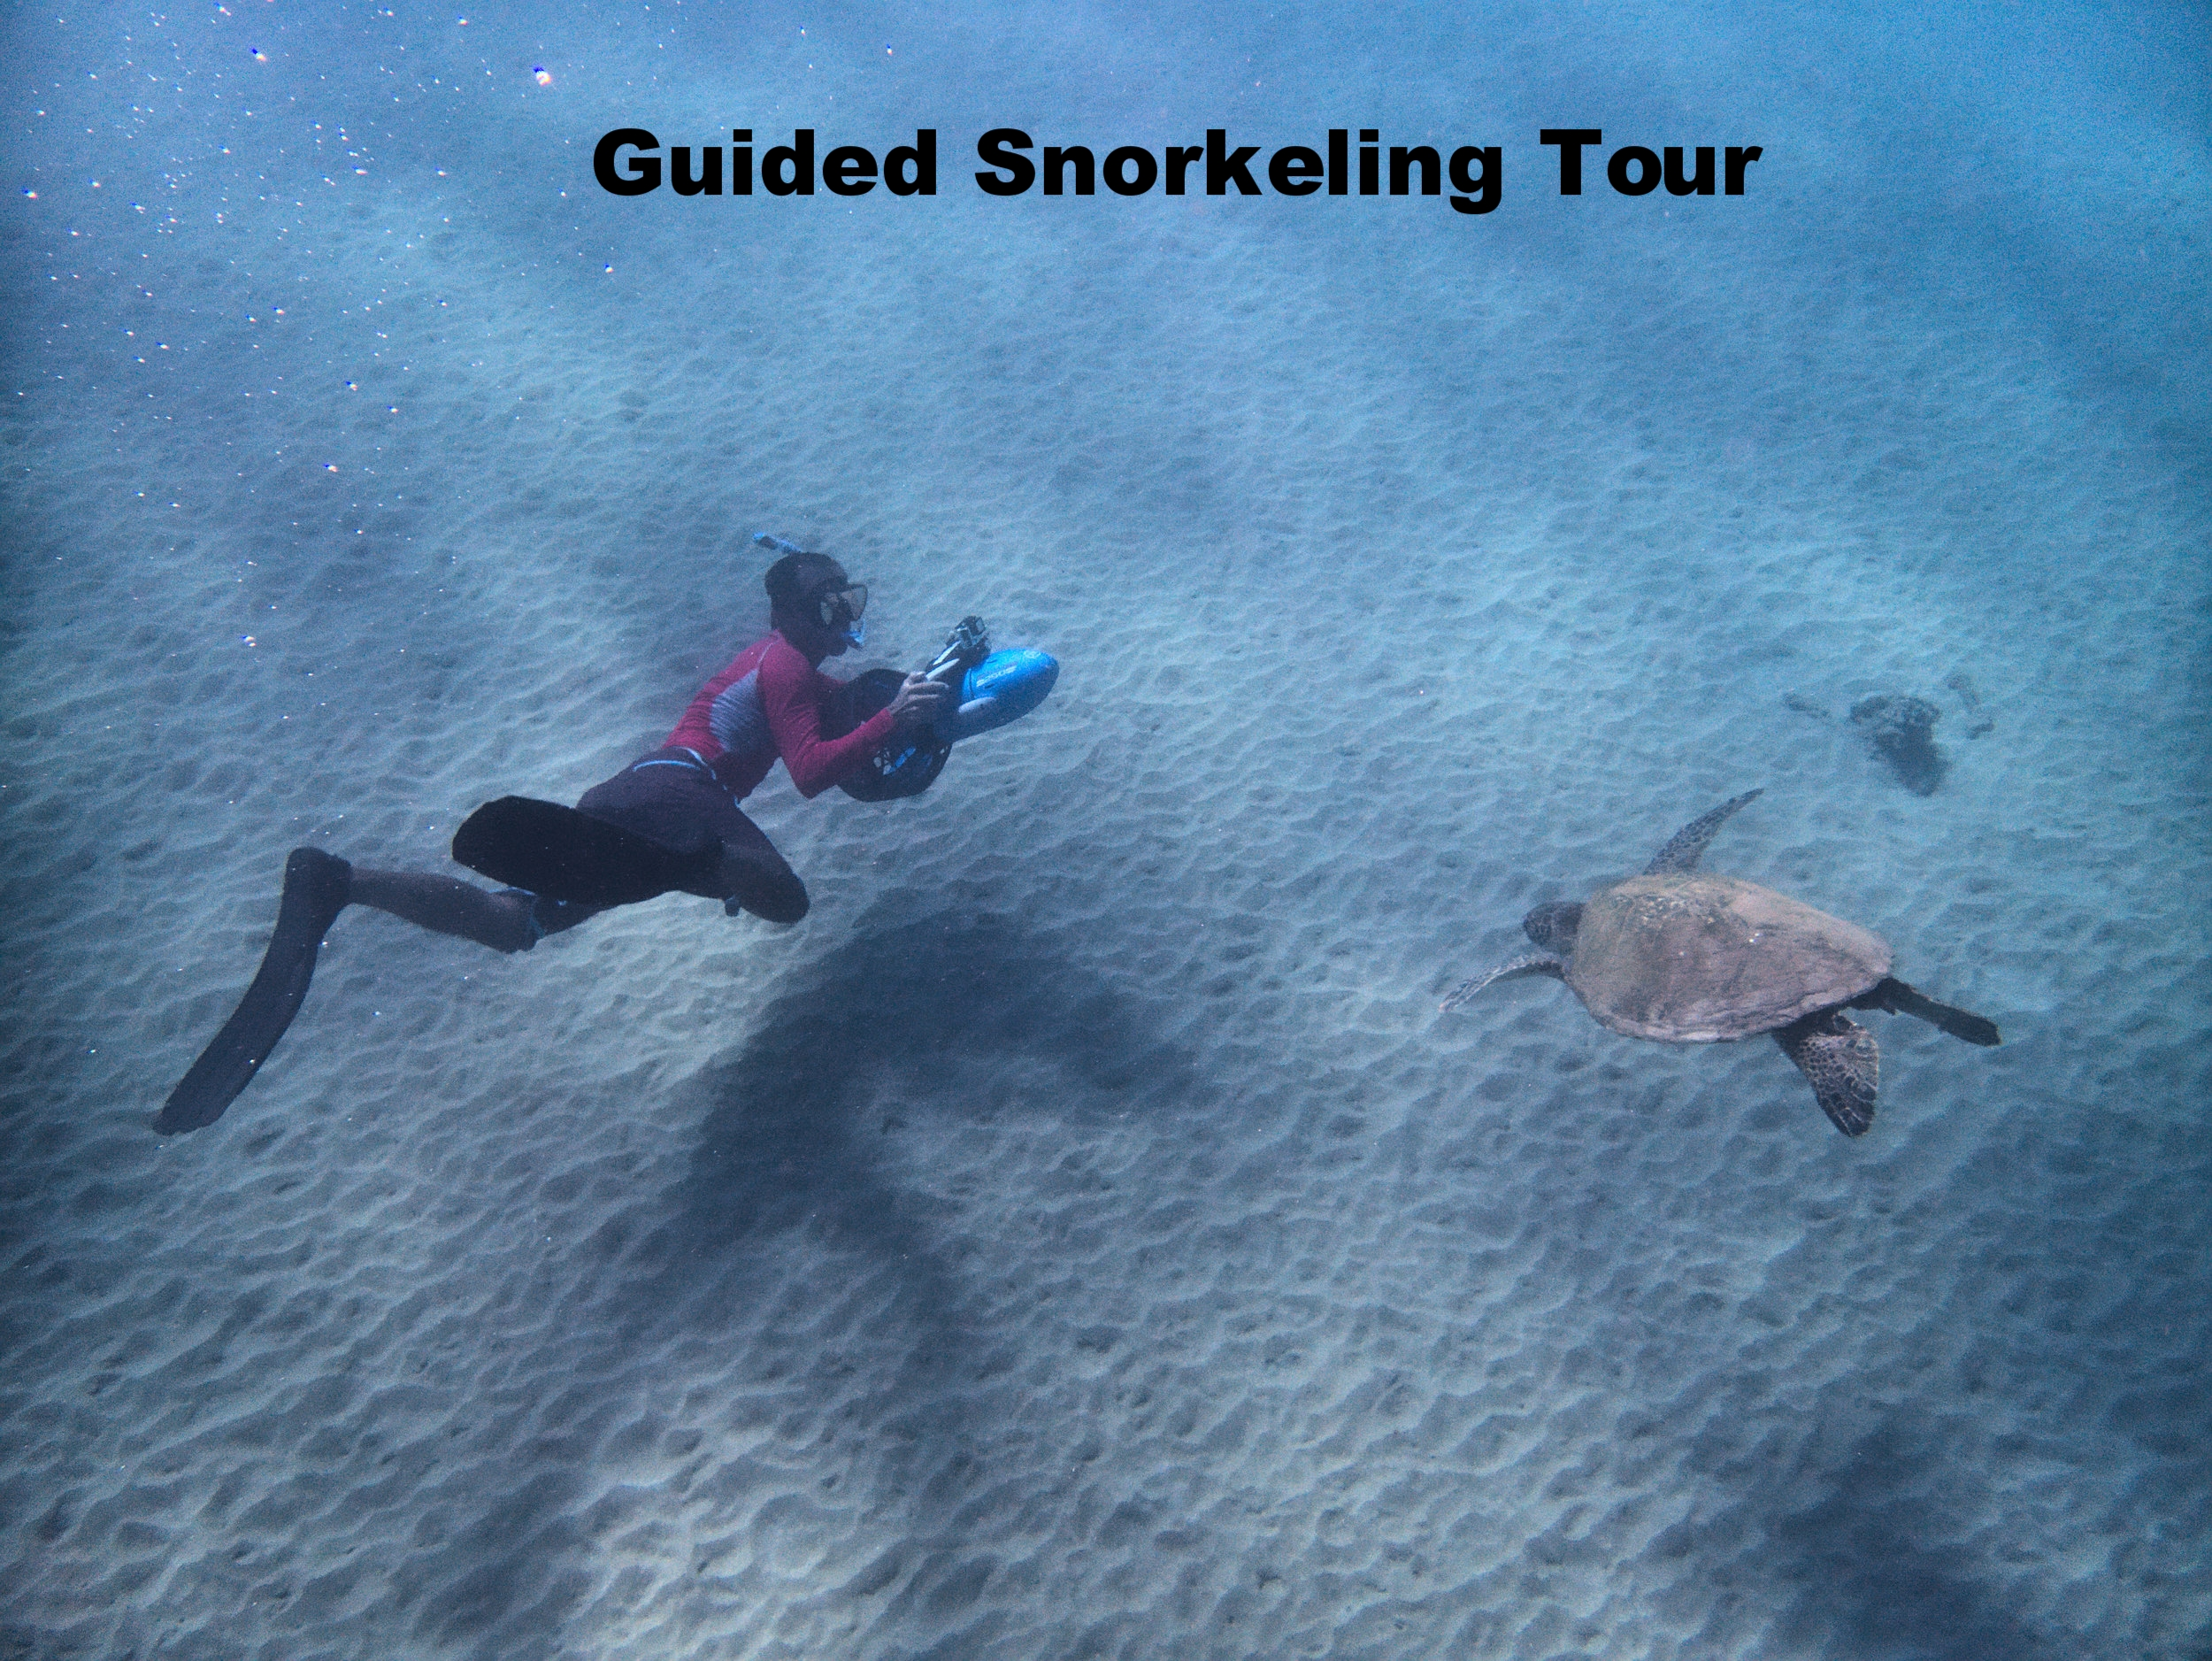 Copy of Guided Snorkeling Tour